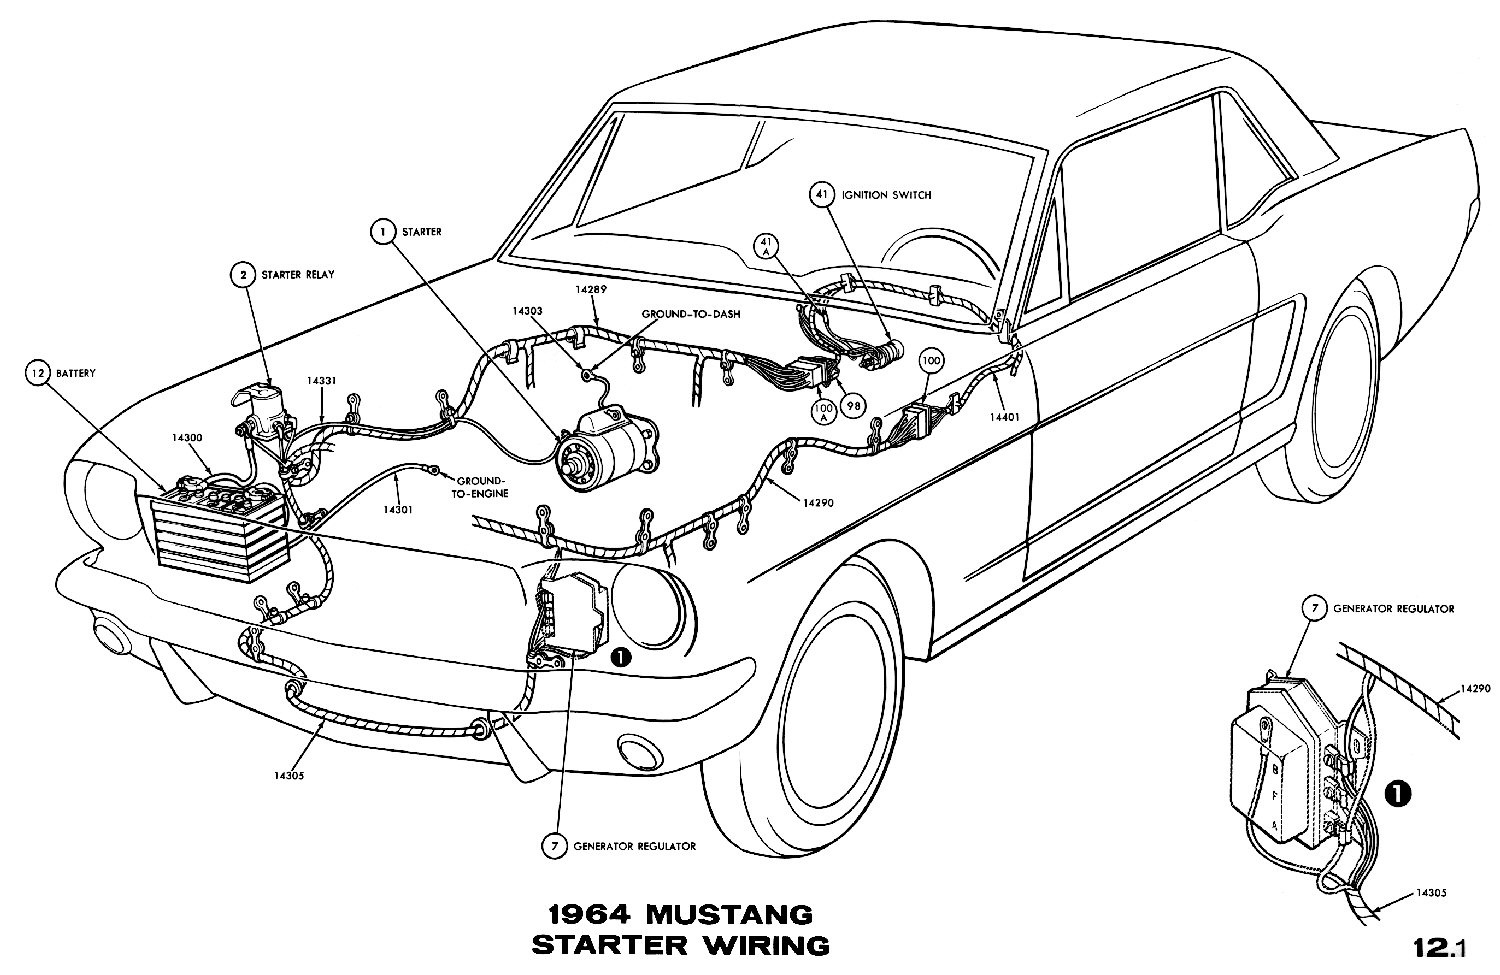 1964d 1964 mustang wiring diagrams average joe restoration 1969 mustang alternator wiring diagram at gsmportal.co